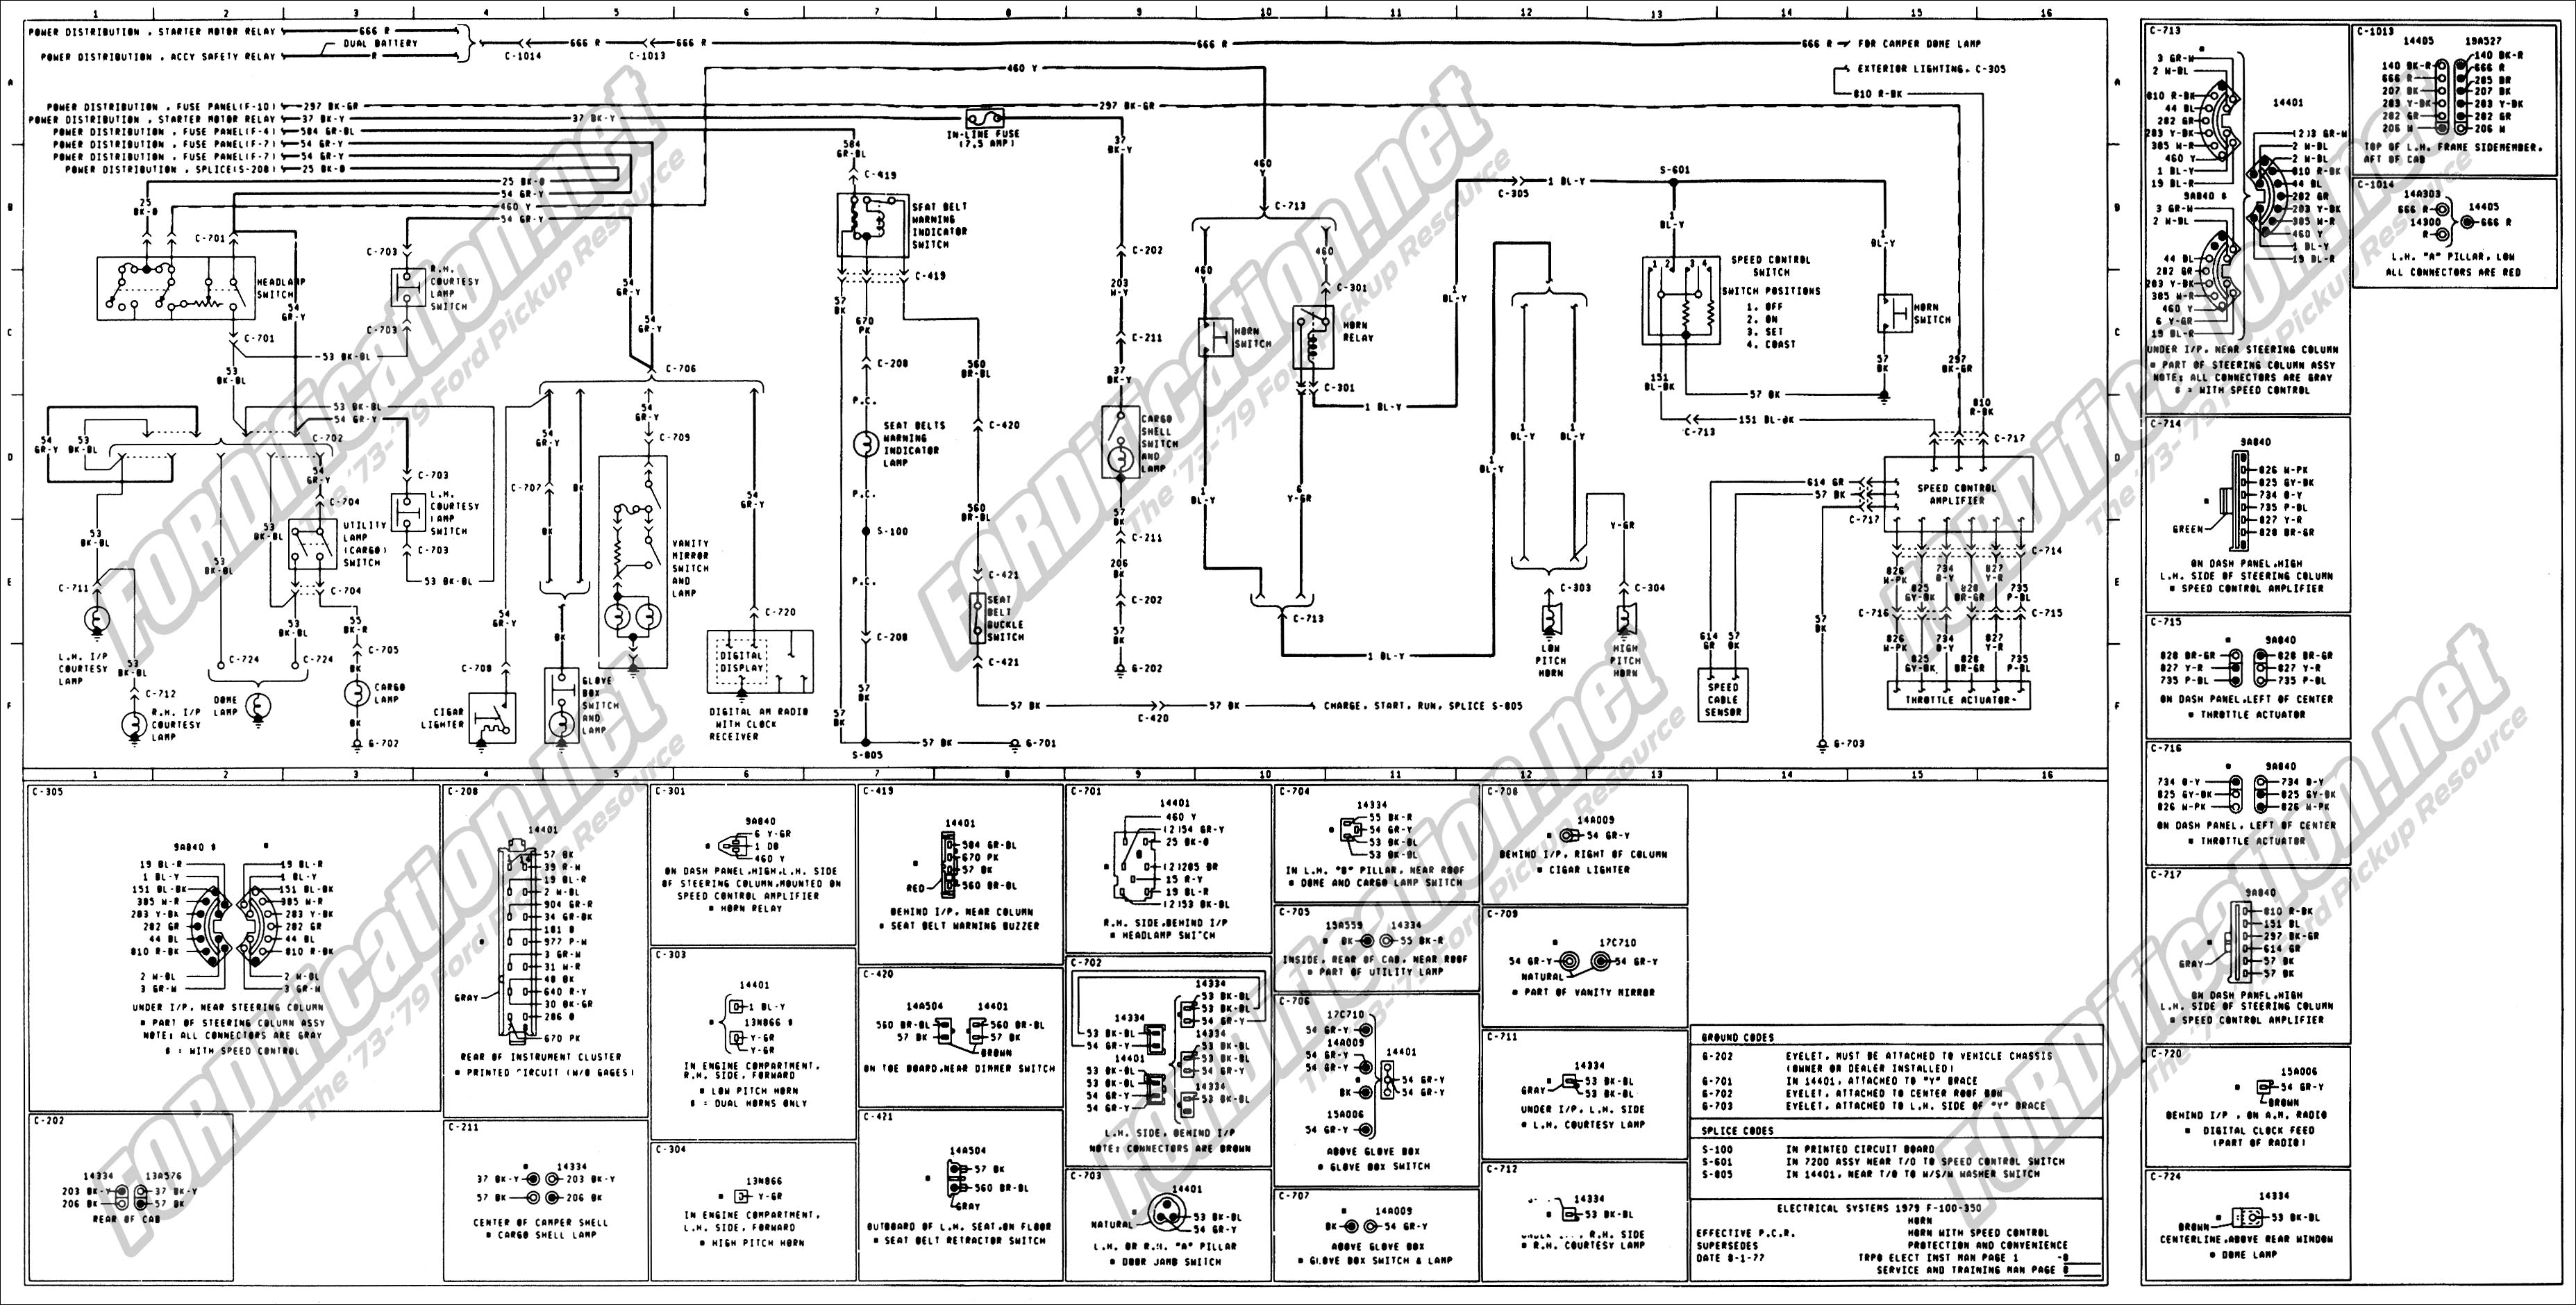 1973 1979 ford truck wiring diagrams schematics fordification net rh fordification net 1985 Ford F -150 Wiring Diagram 1989 Ford F-250 Wiring Diagram